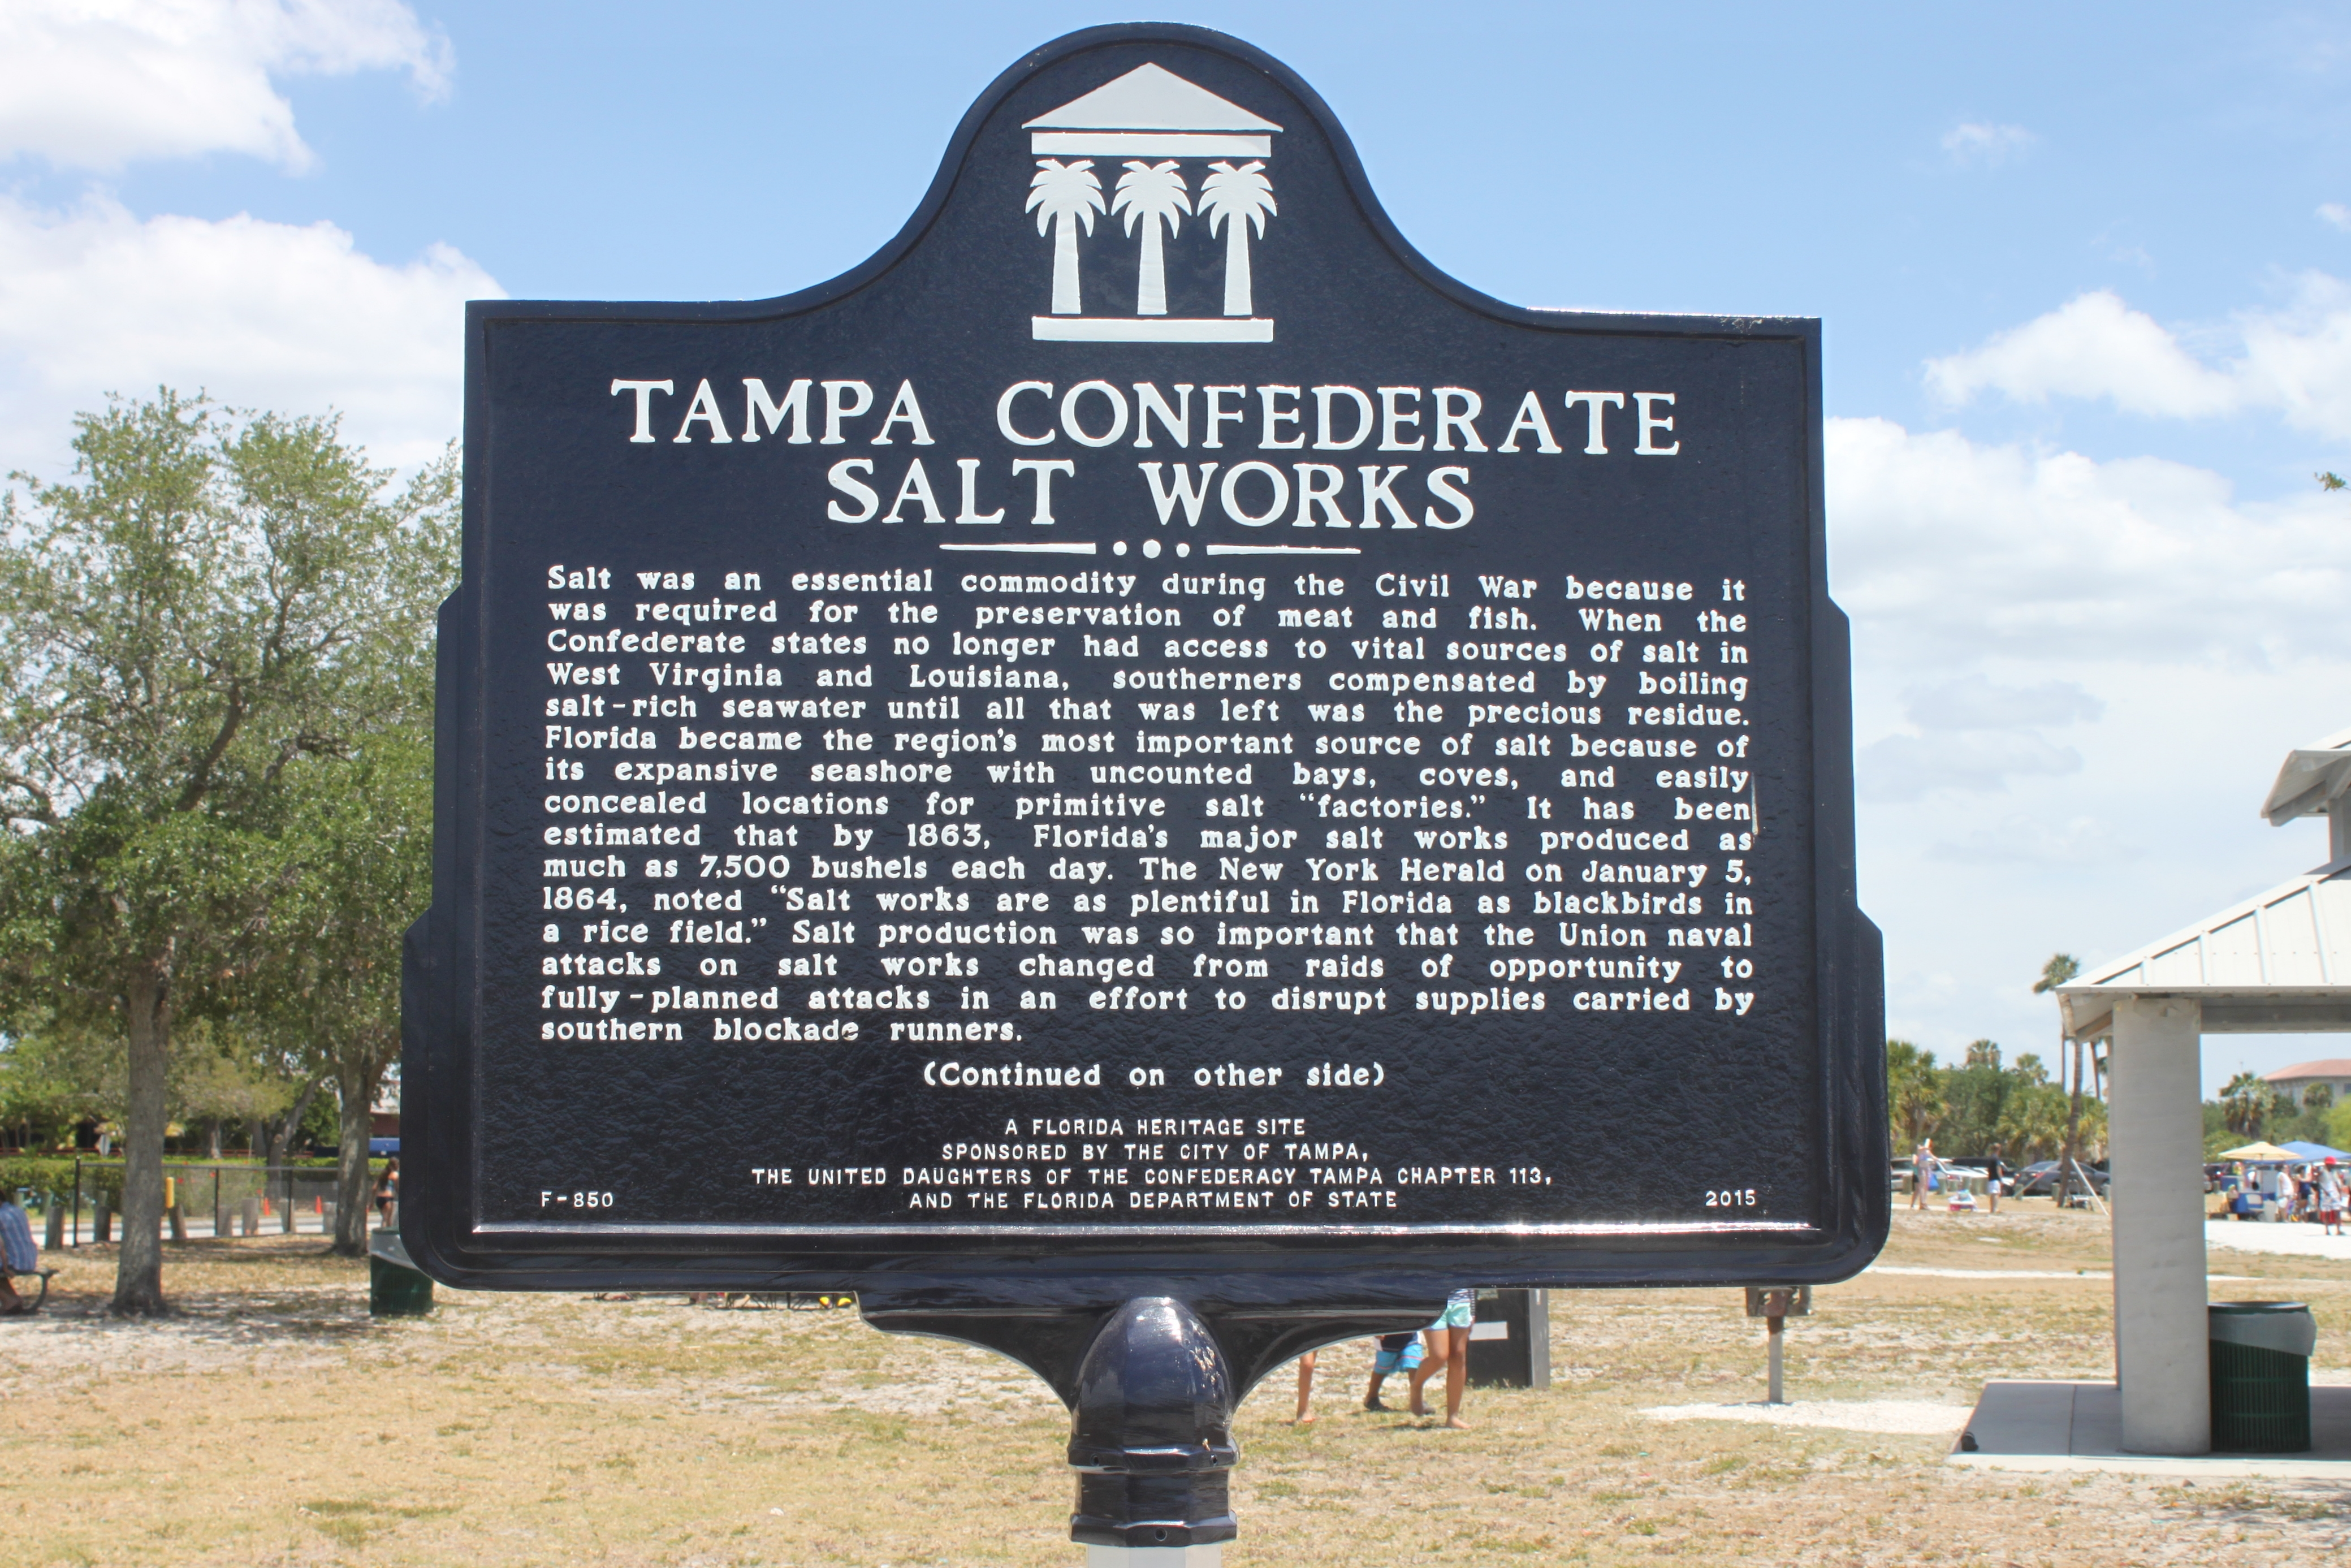 Tampa Confederate Salt Works Marker Side 1